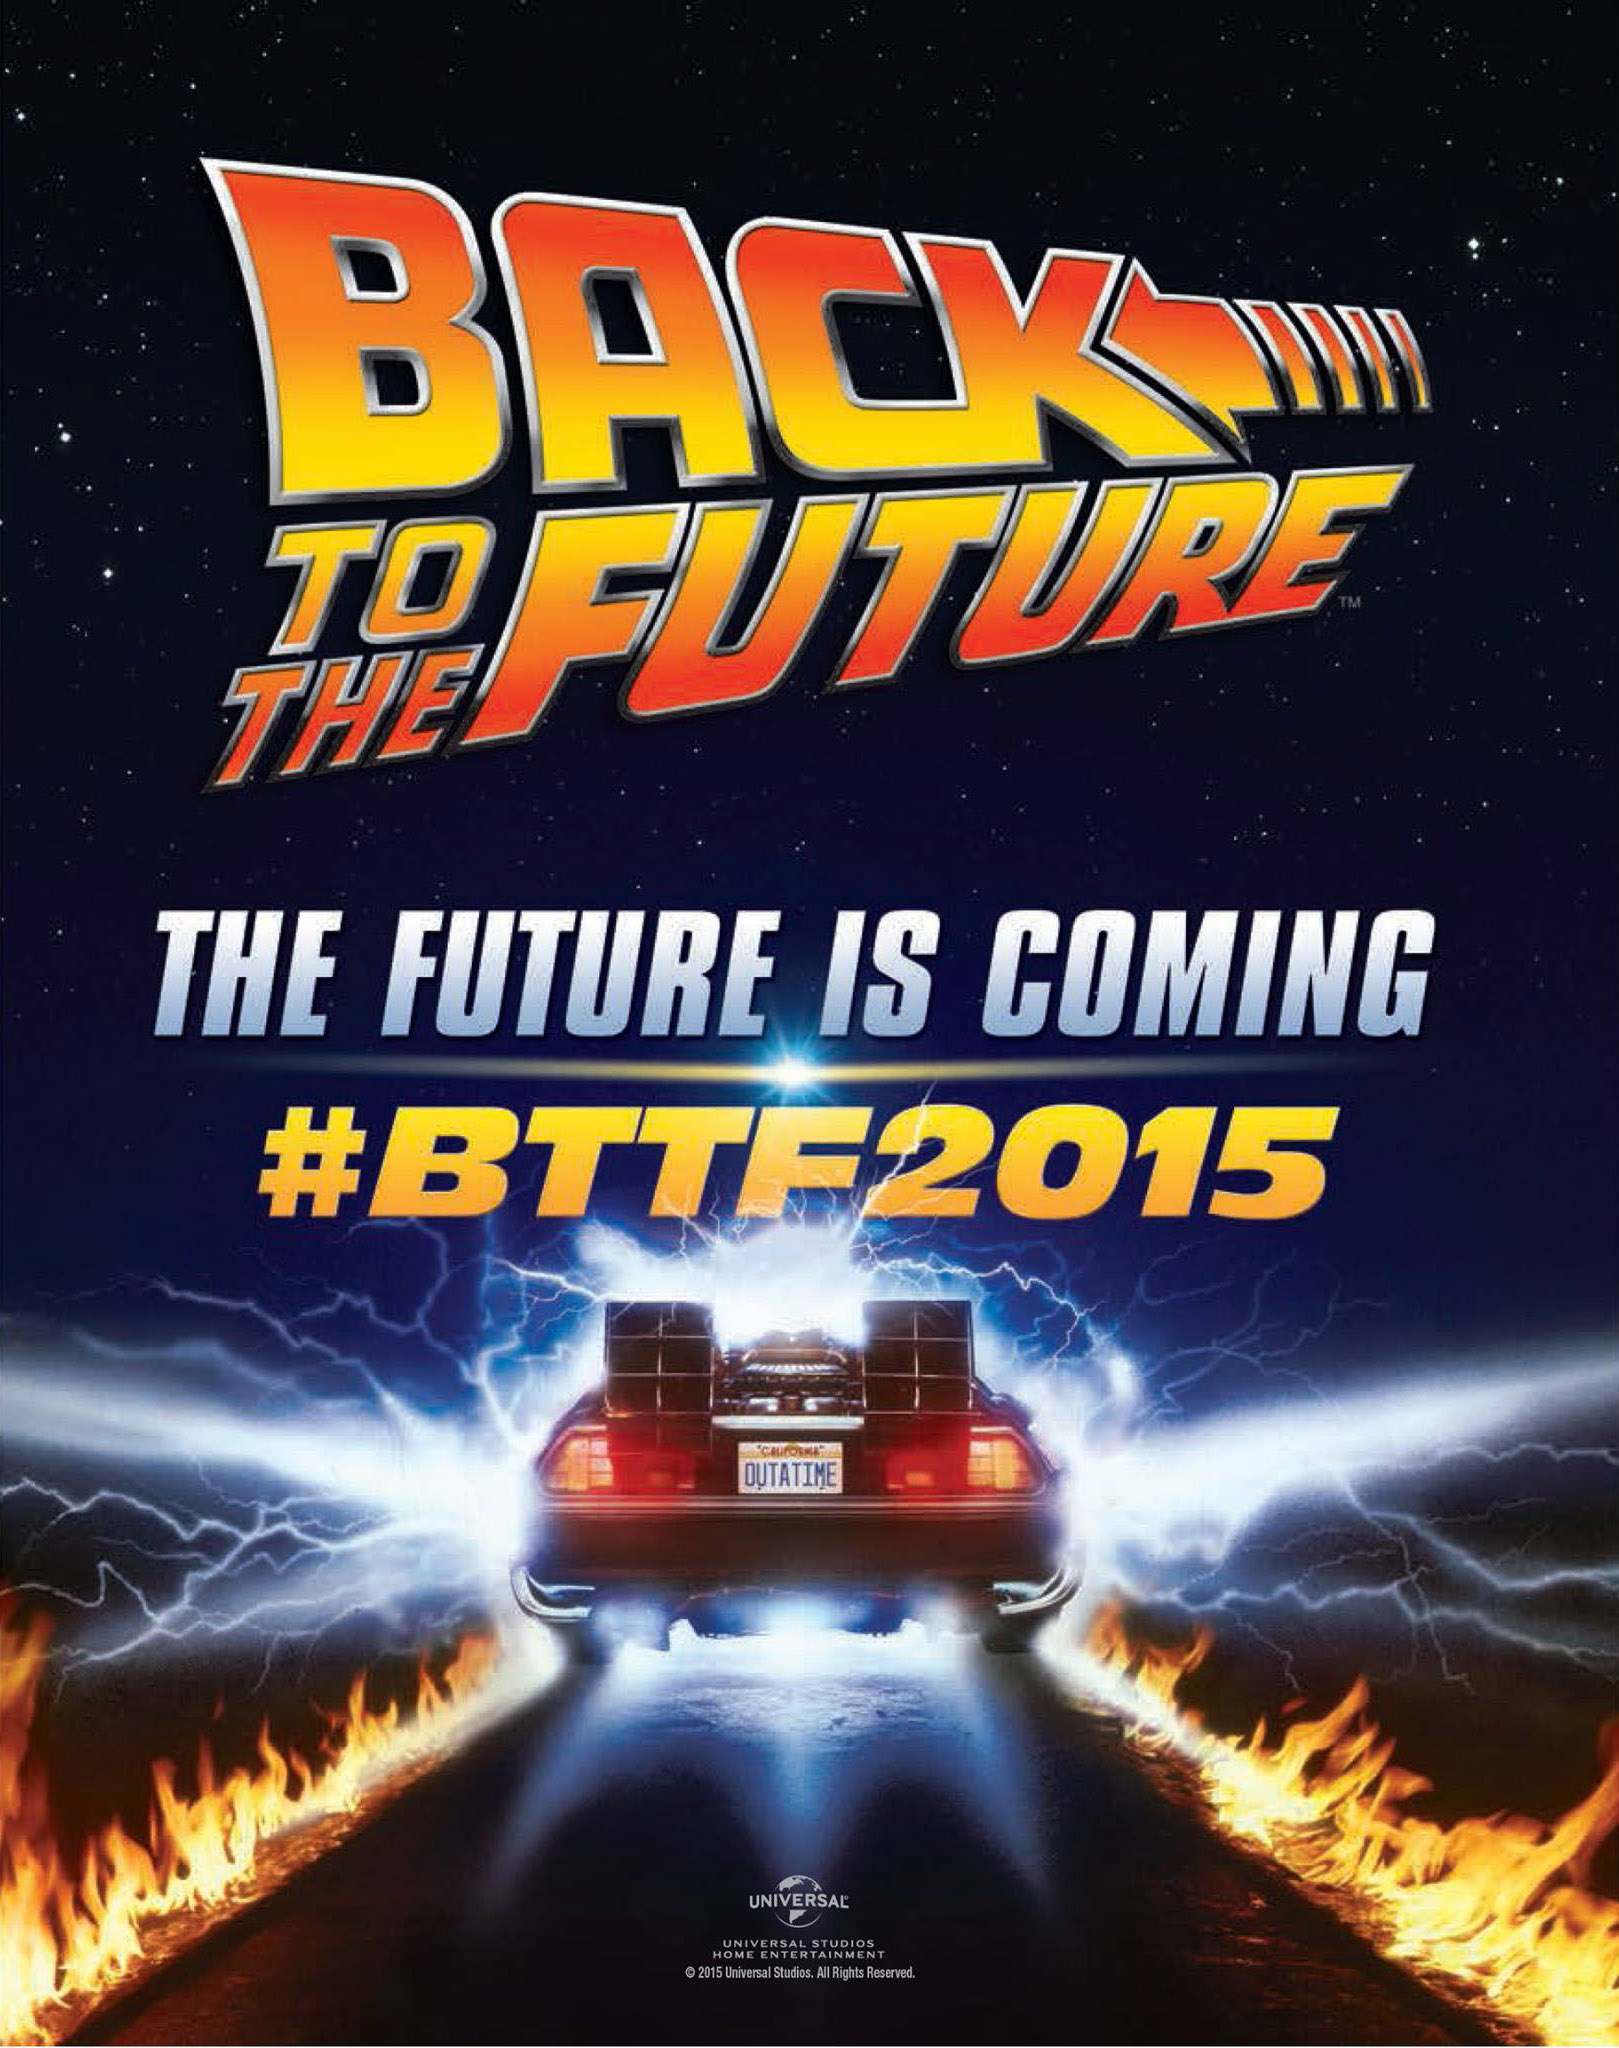 Bttf2015 Something Back To The Future Related Is